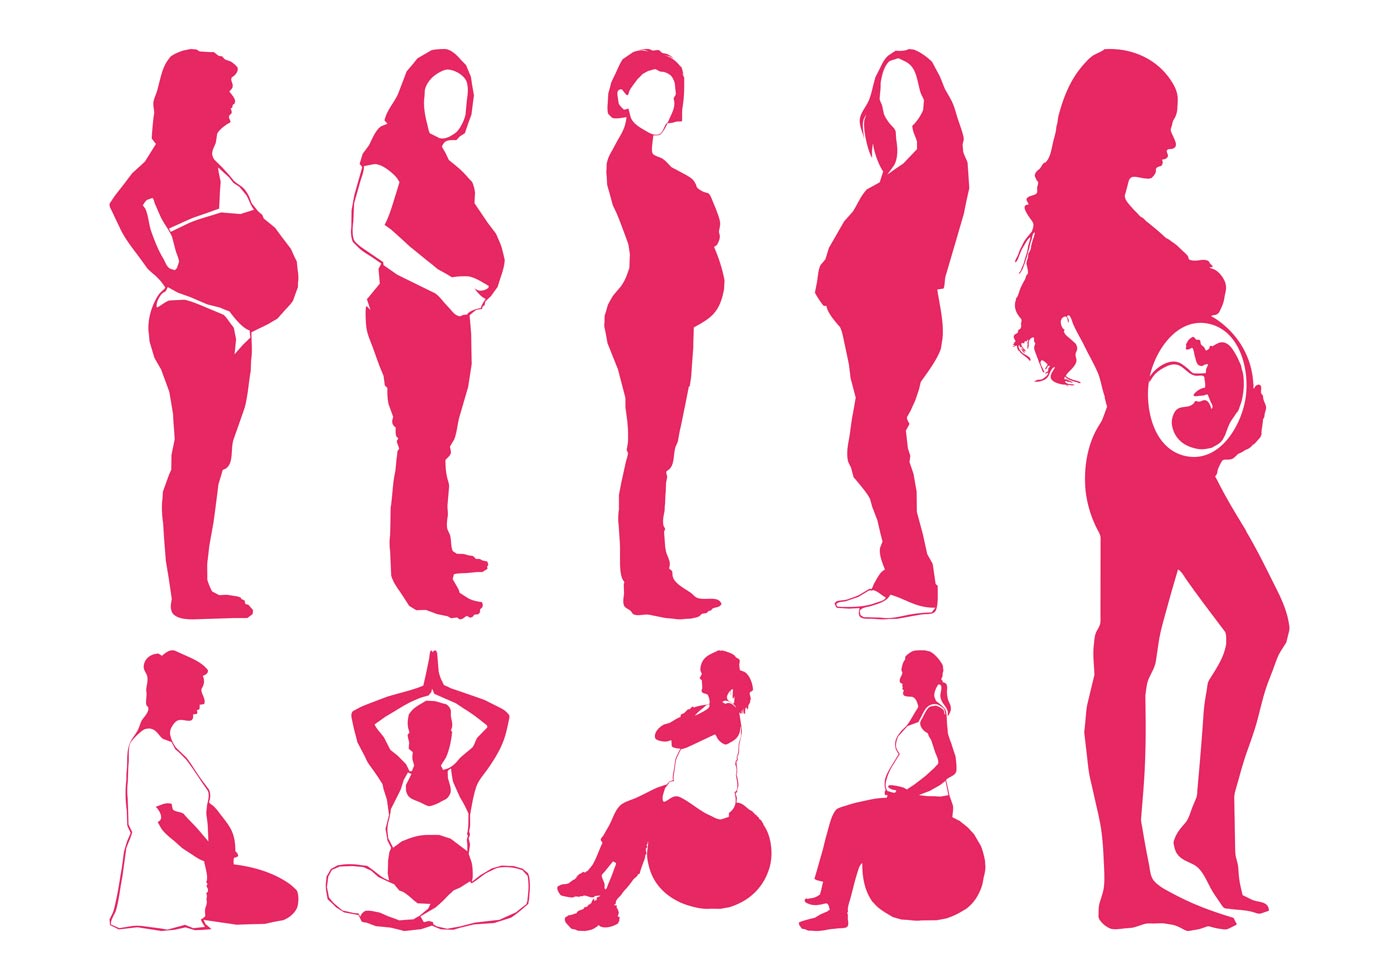 Pregnancy Svg Mommy Svg Baby Svg Pregnant Svg Mommy To Be: Pregnant Women Silhouettes